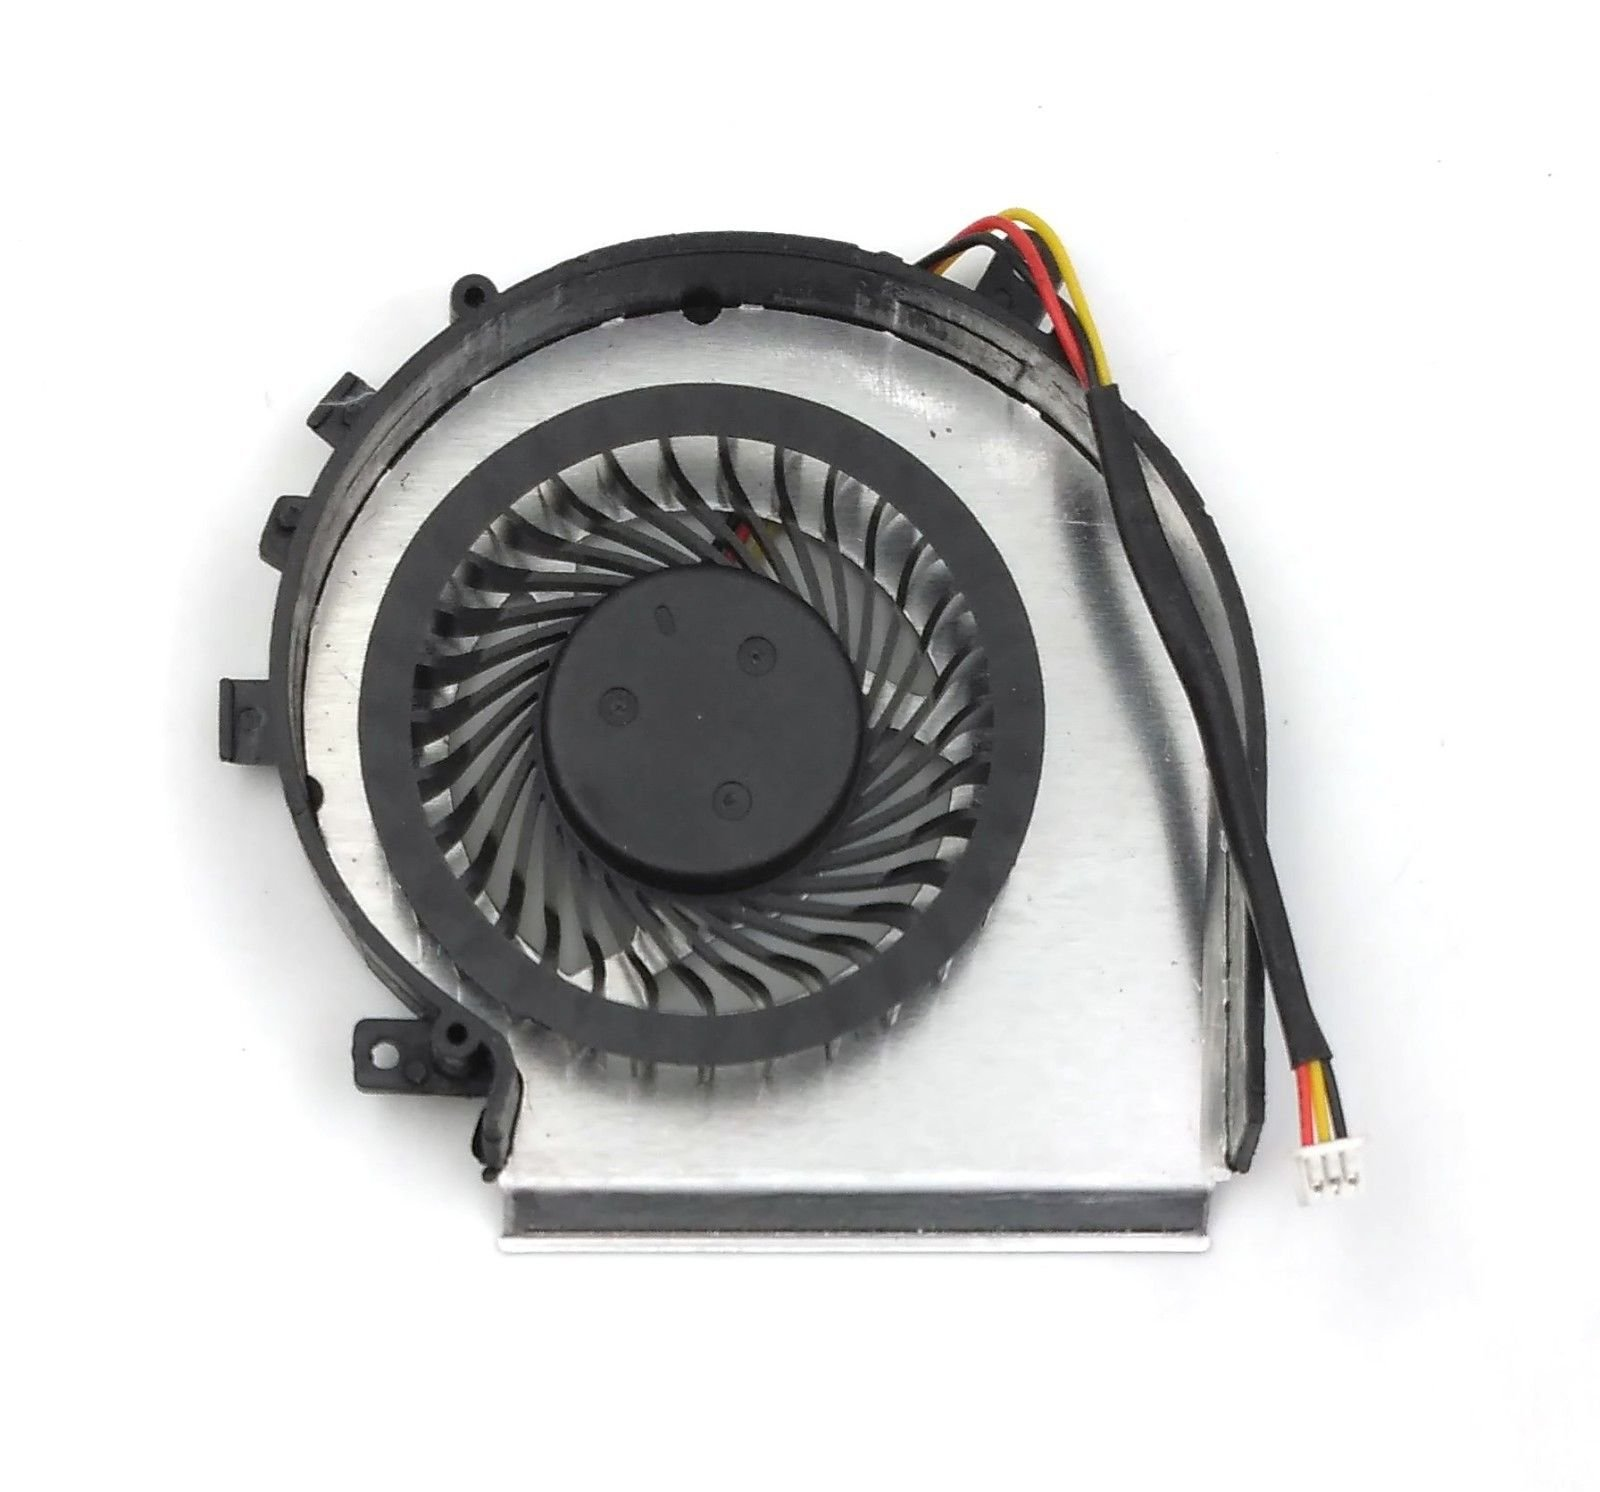 Rarido Delta AFB0912VH = AUB0912VH 9cm 90mm 909025MM 9225 DC 12V 0.60A 4-pin pwm Computer CPU Cooling Fans